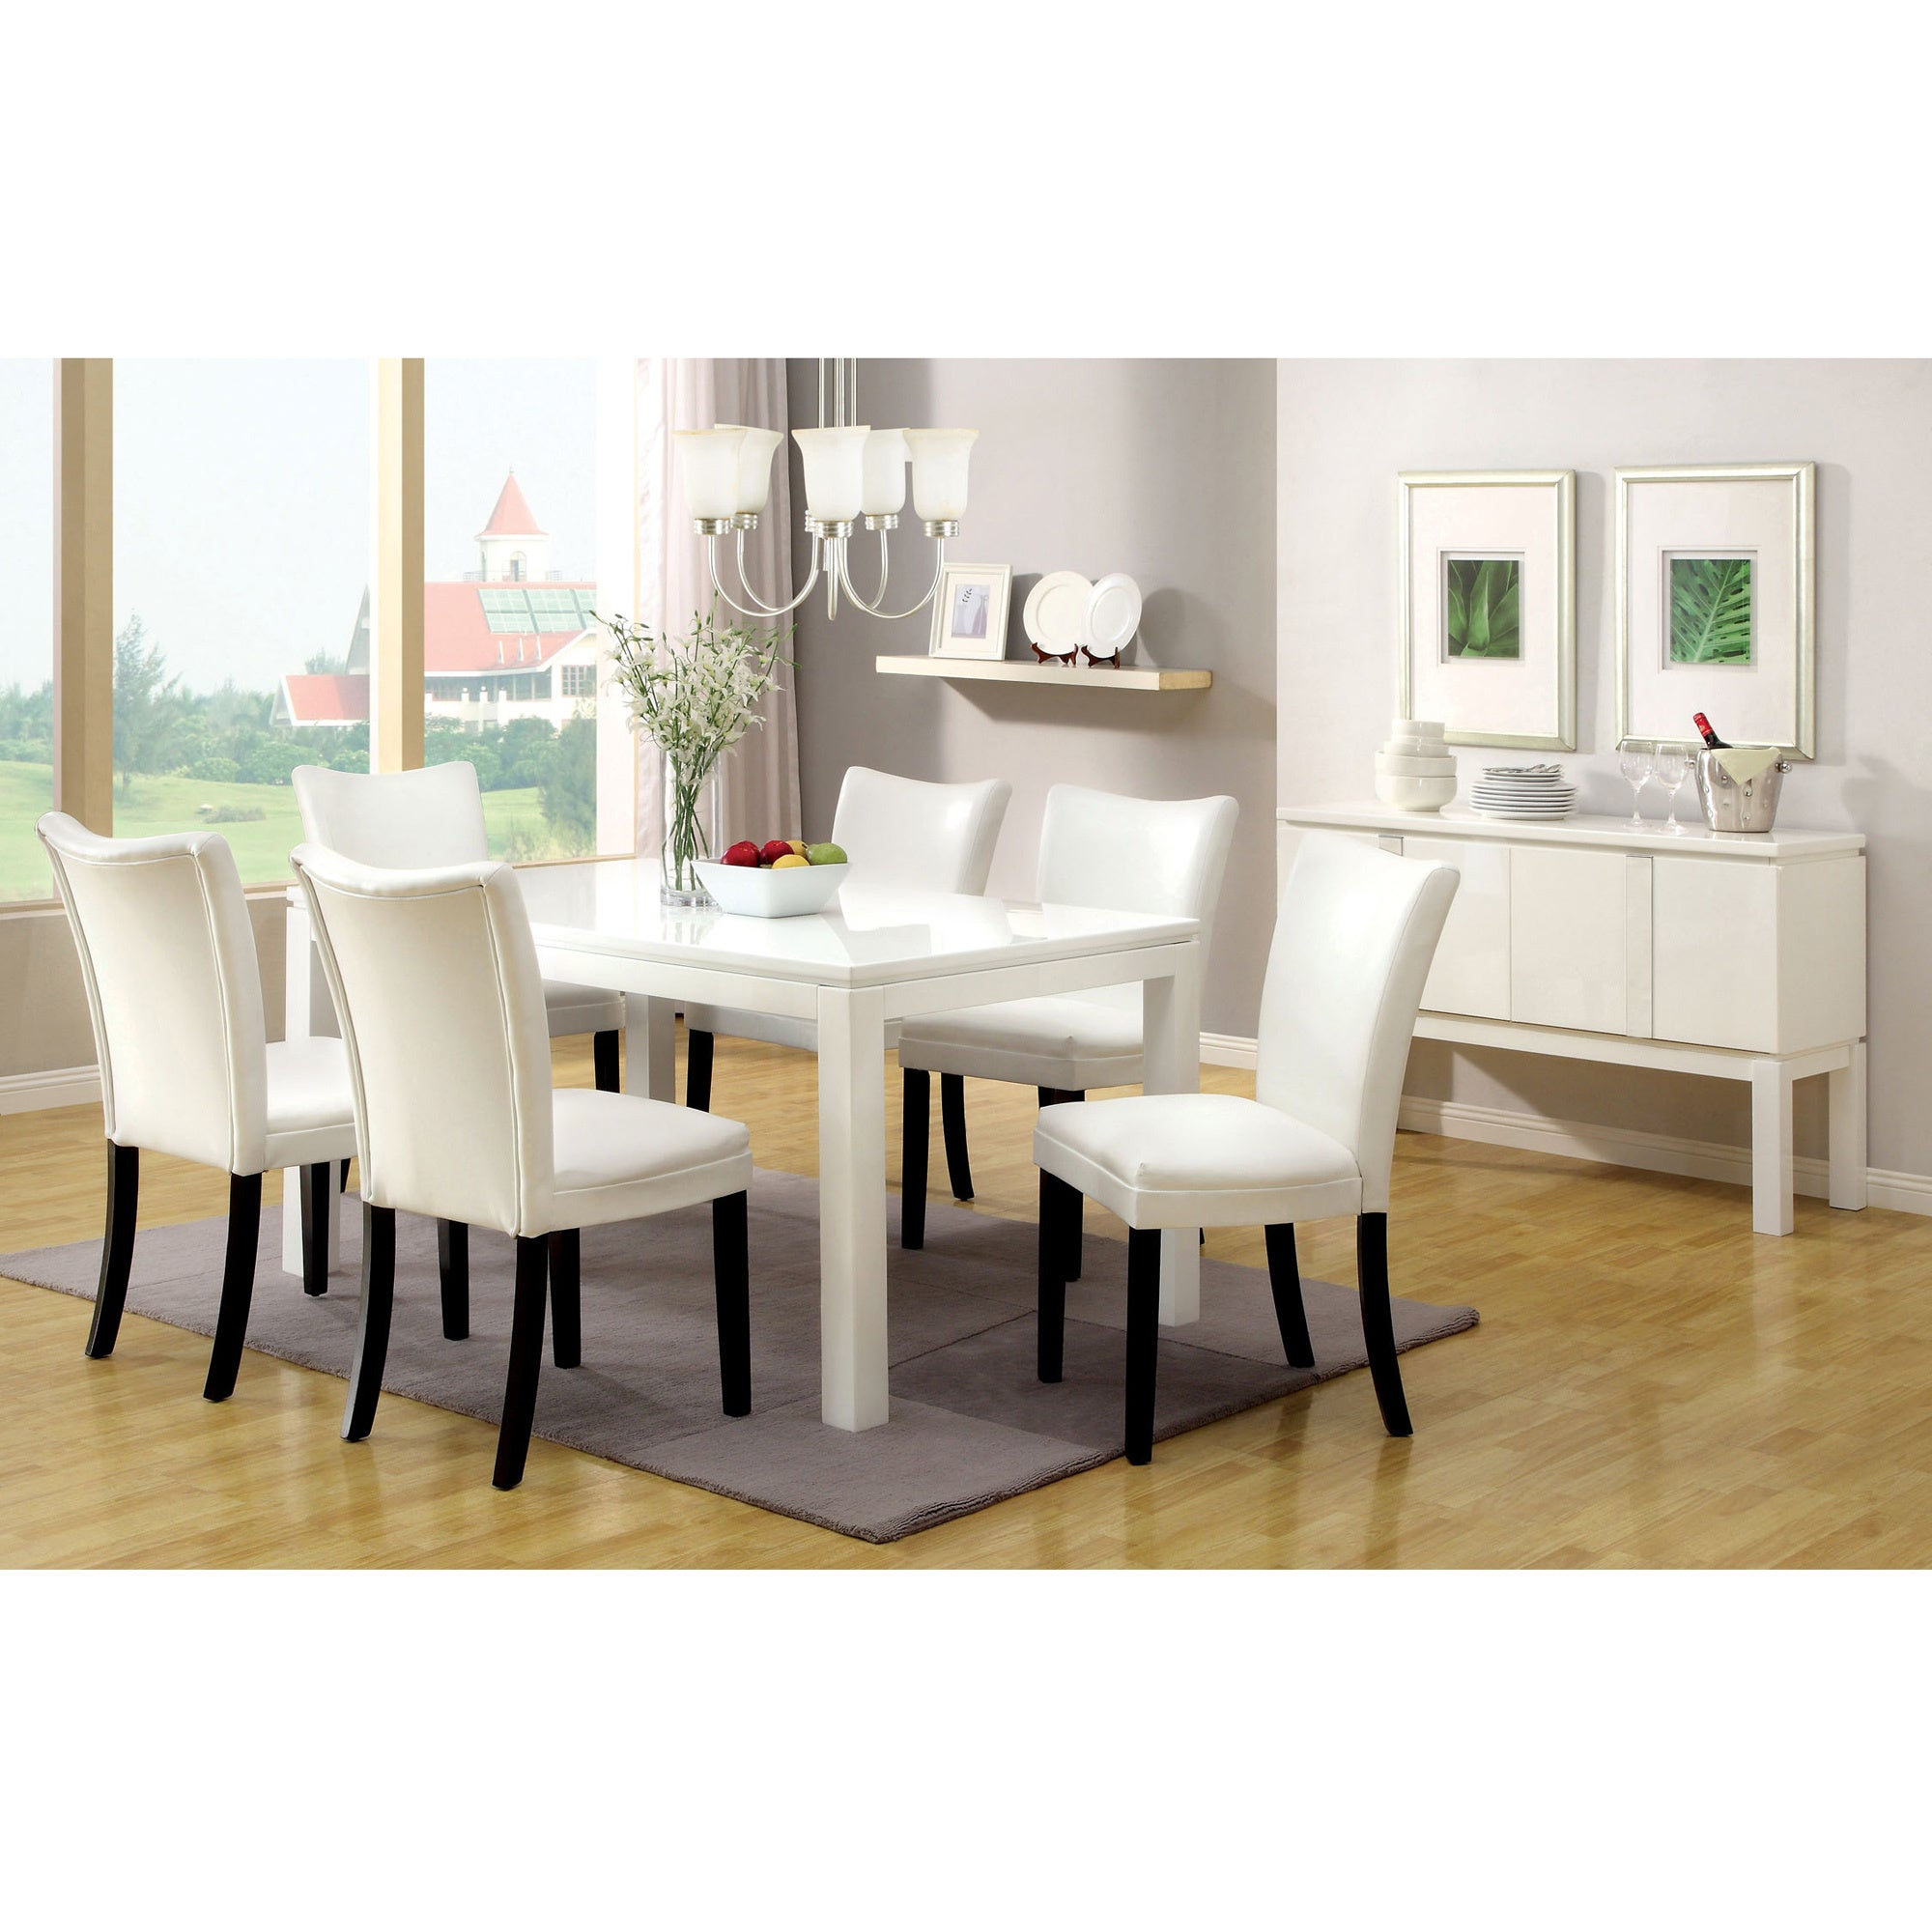 Furniture Of America Davao High Gloss Lacquer Contemporary 60 Inch Dining Table